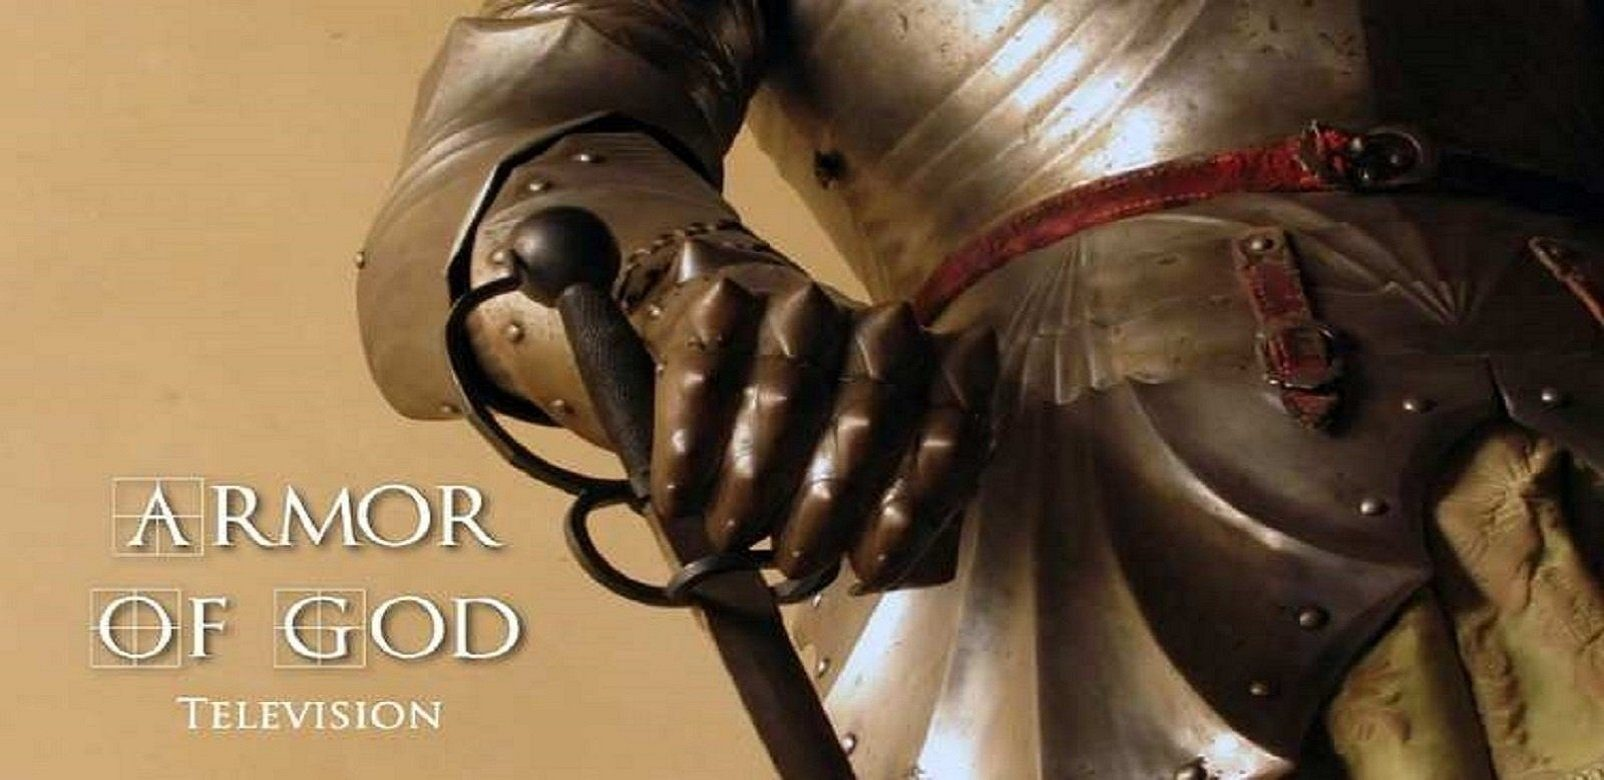 Armor of God Television